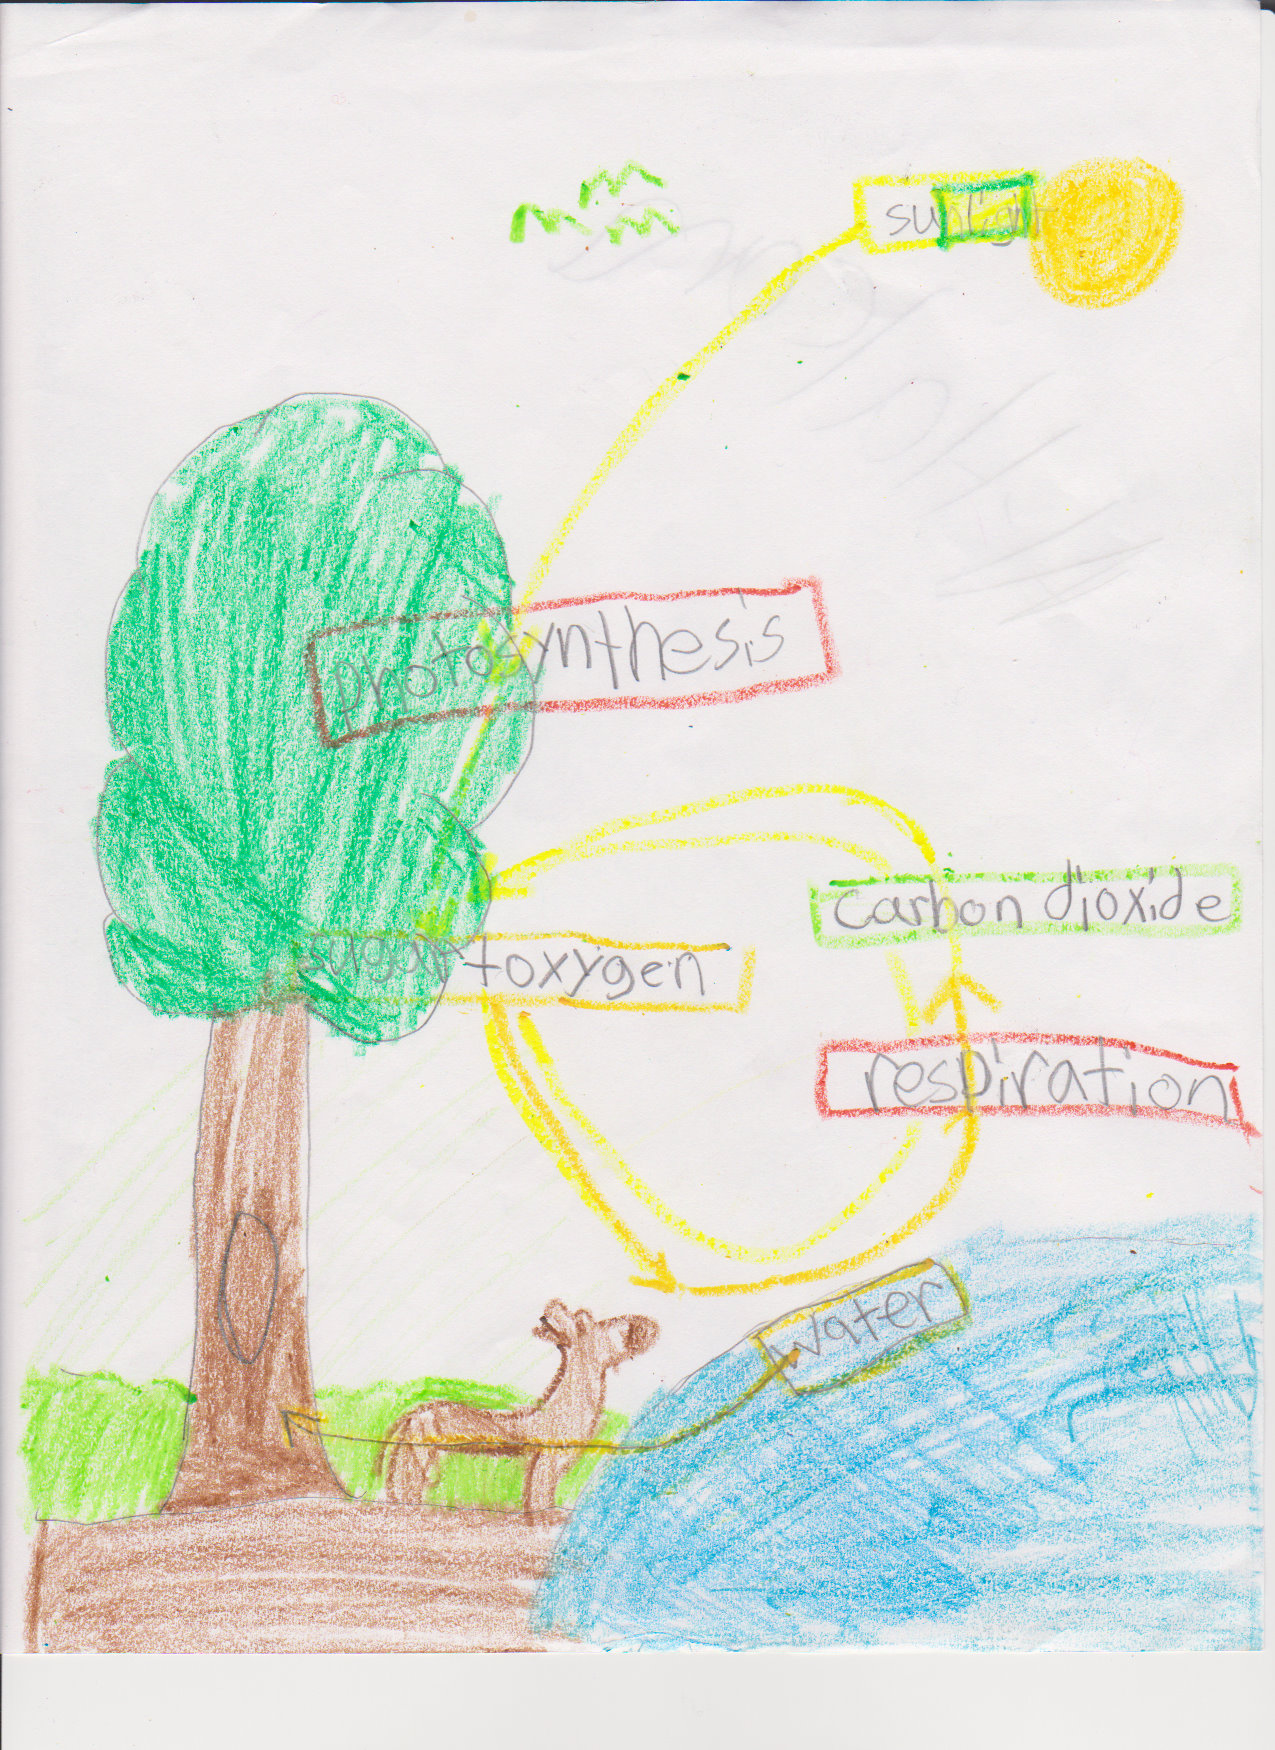 photosynthesis process diagram for 5th grade the treasure of lemon brown plot fifth respiration and transpiration mrs moskal